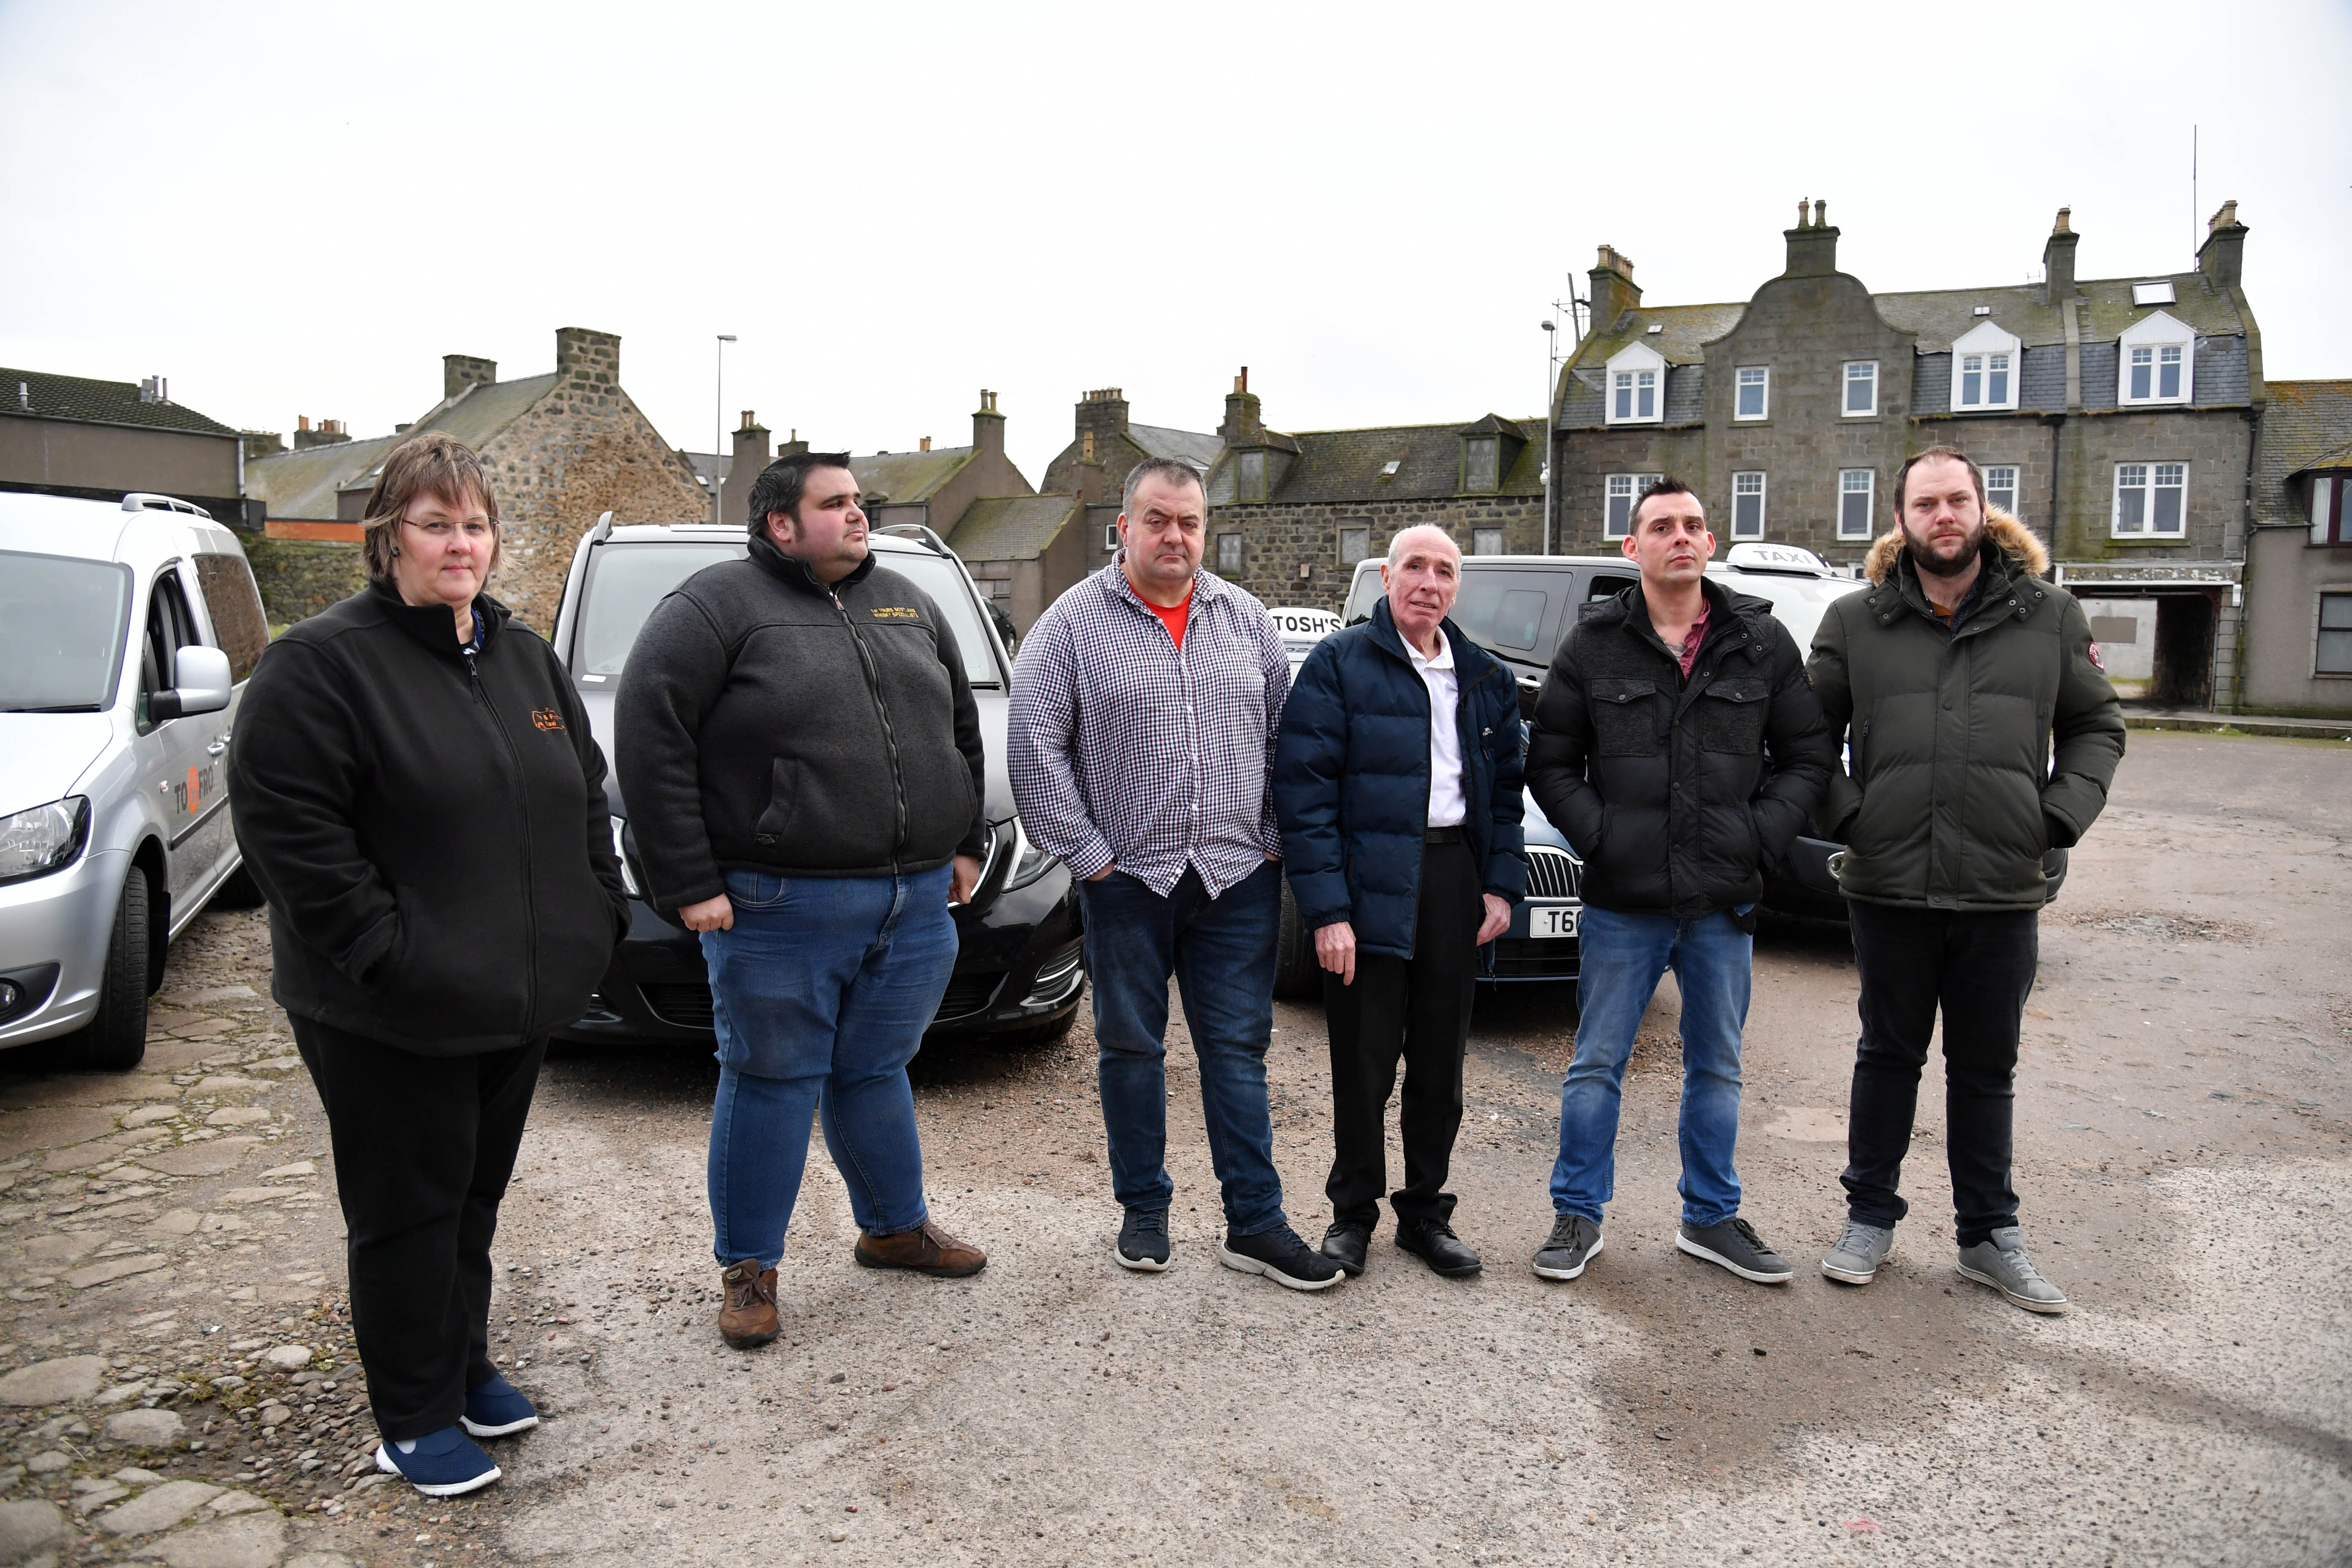 (L-R) Concerned taxi drivers Elaine Morrison, Thomas Beedie, Rodney Watson,Billy Downie, Shaun Downie and John Ritchie.